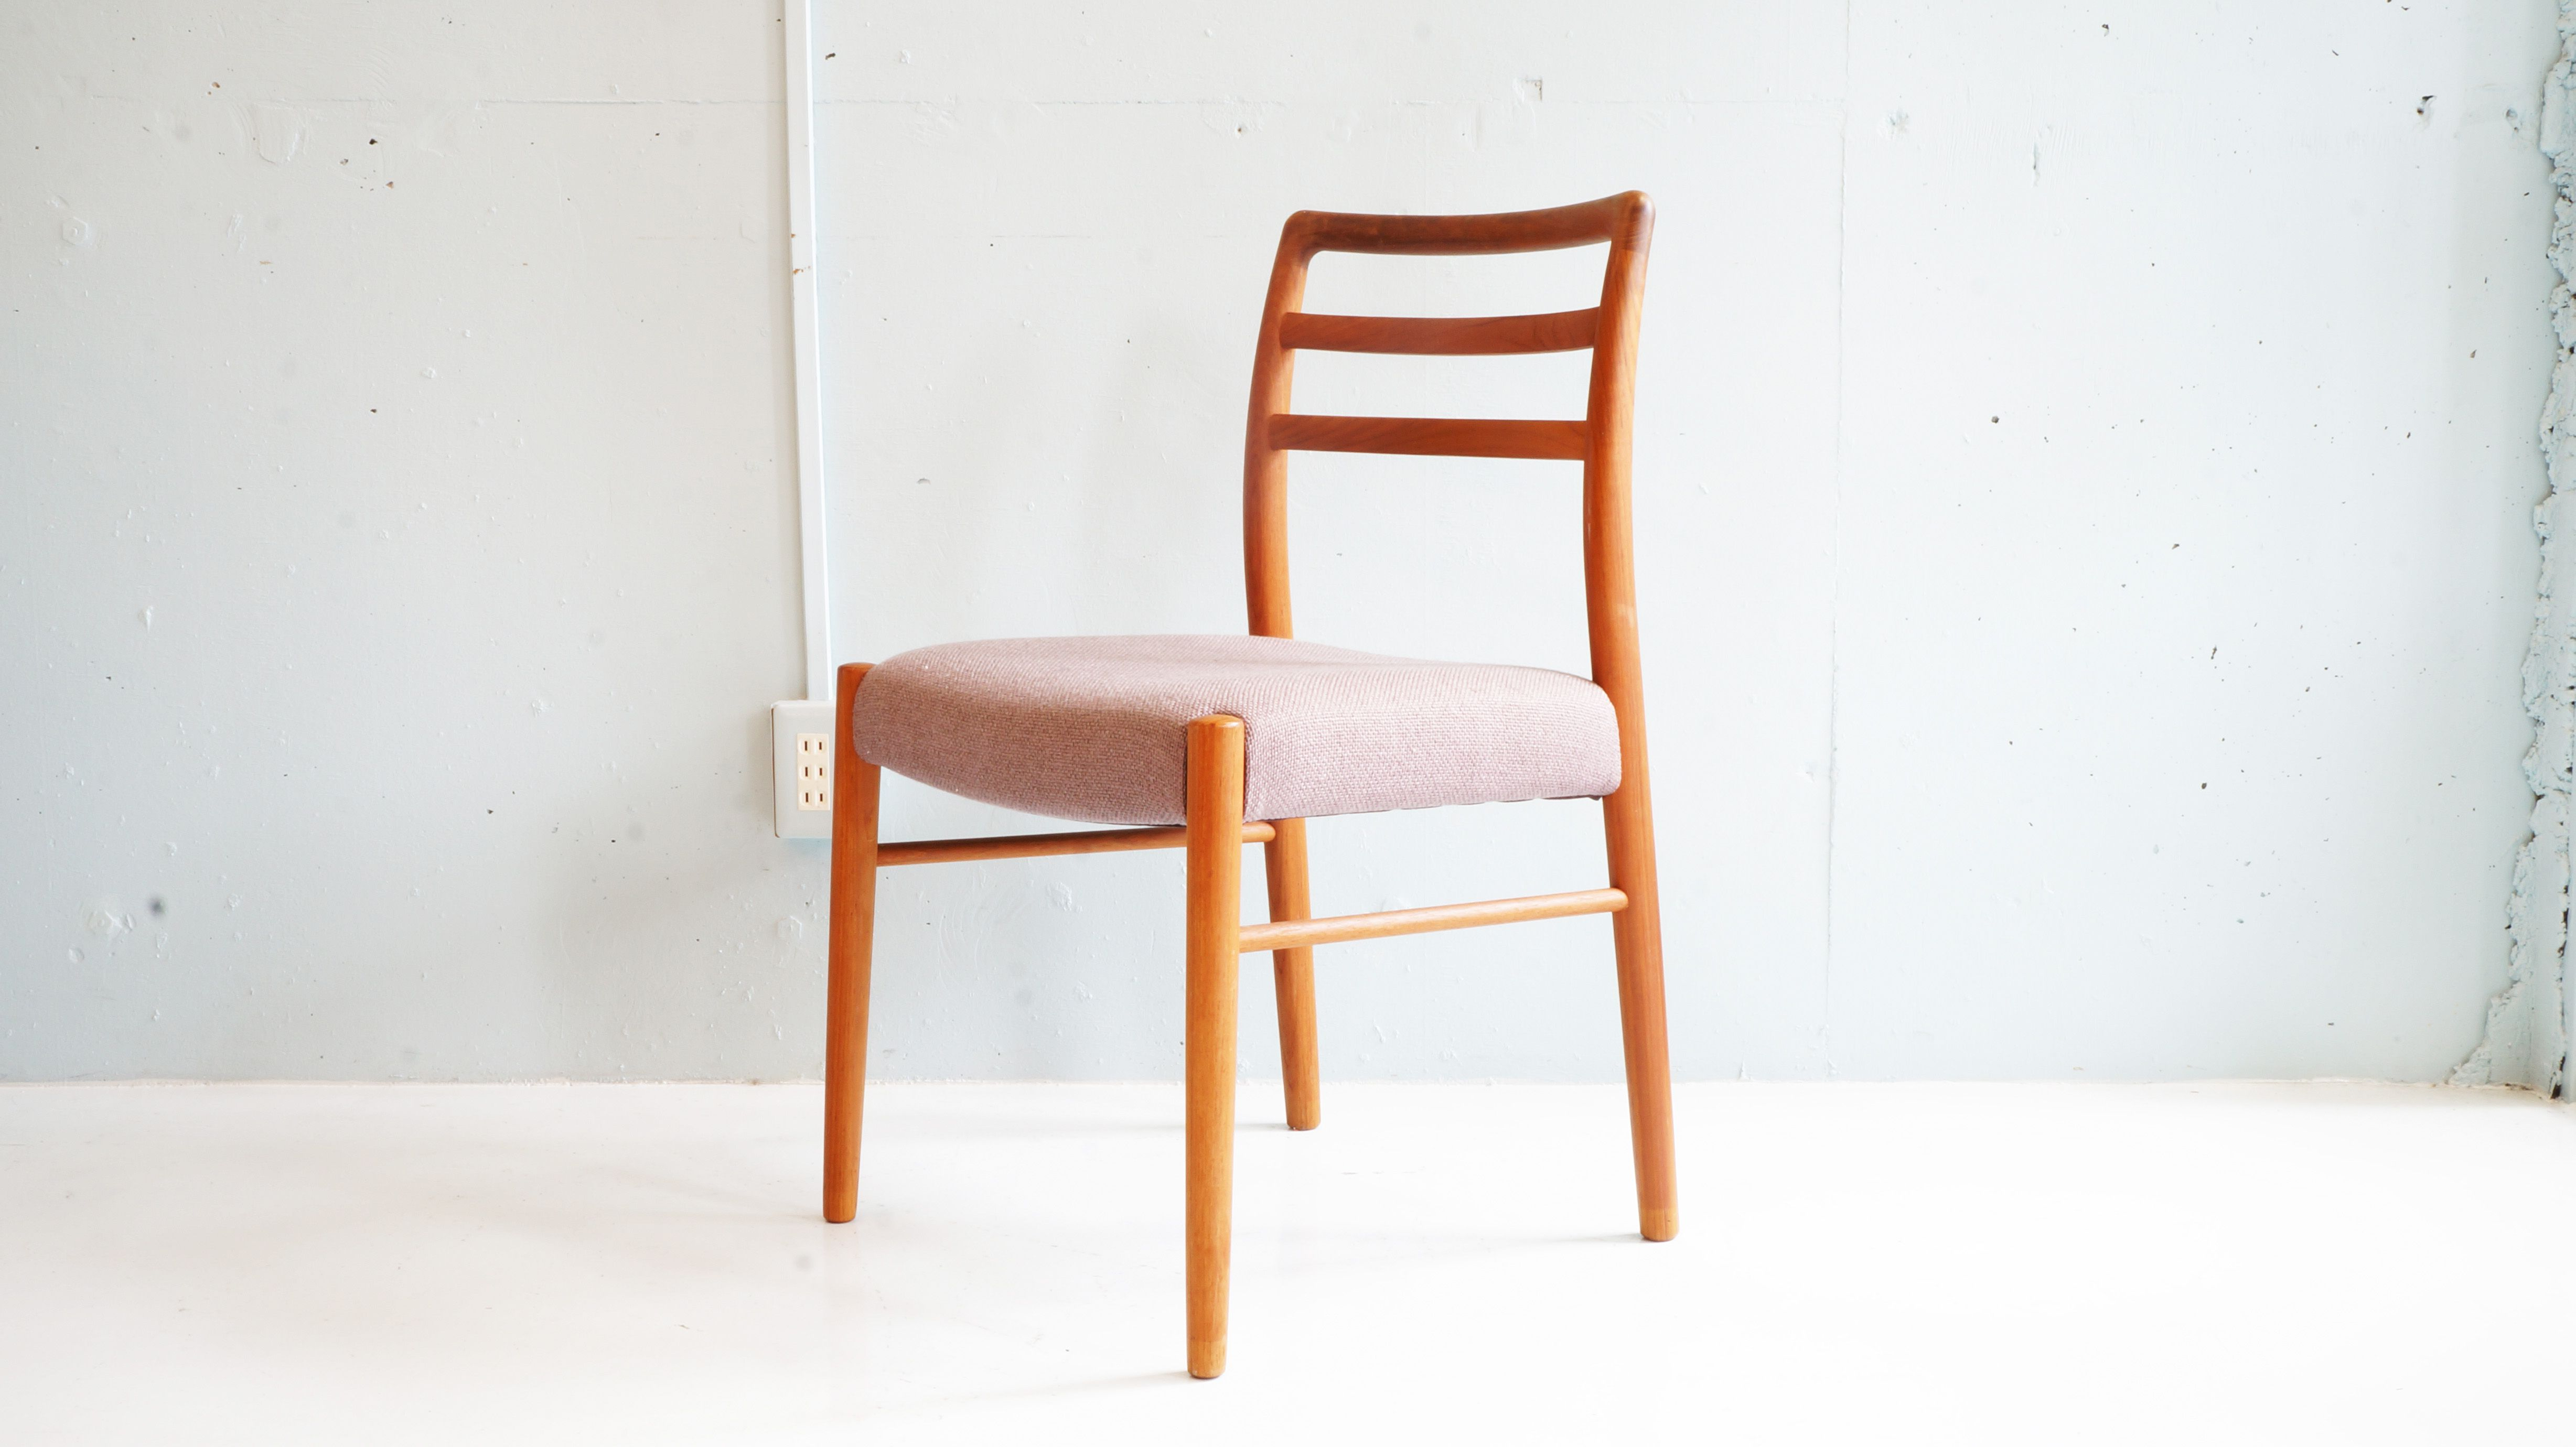 Teak Wood Dining Chair チーク材 ダイニングチェア Warm Pinterest